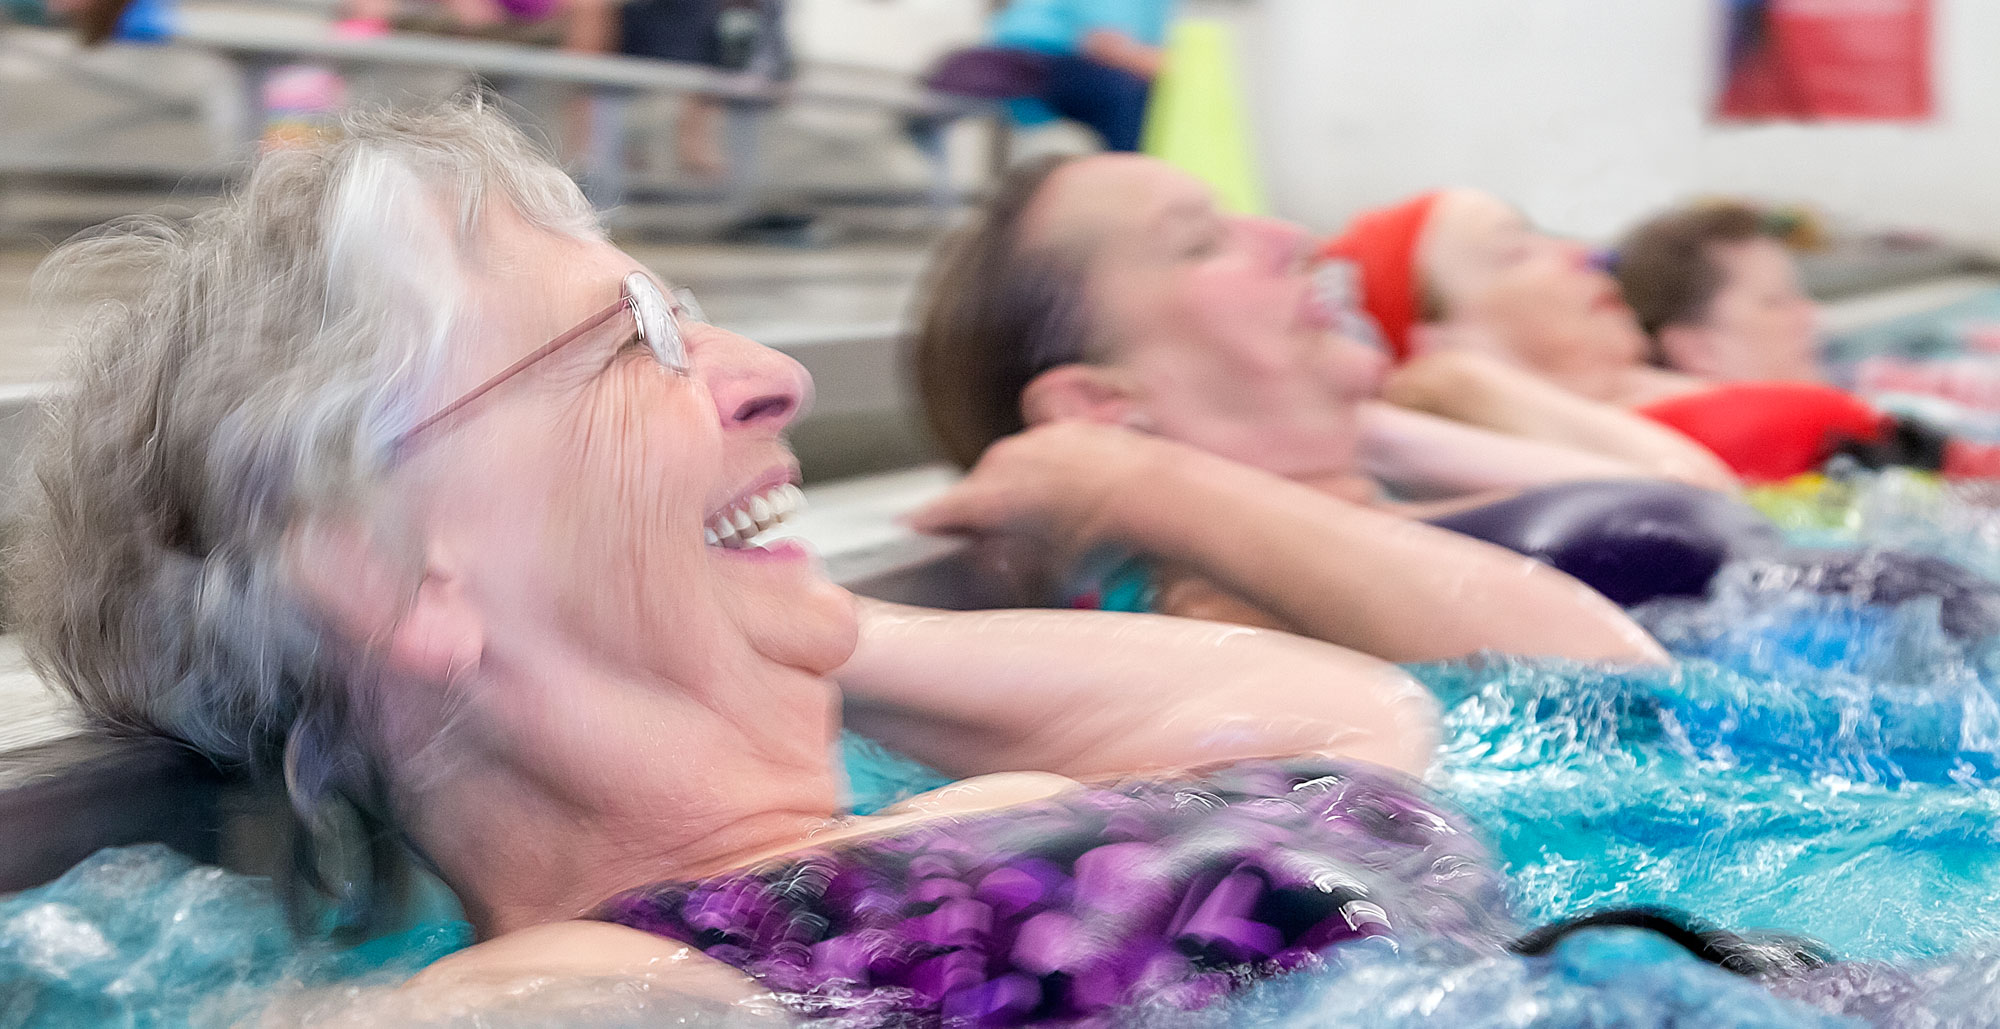 IMAGE: Seniors in Swimming Pool